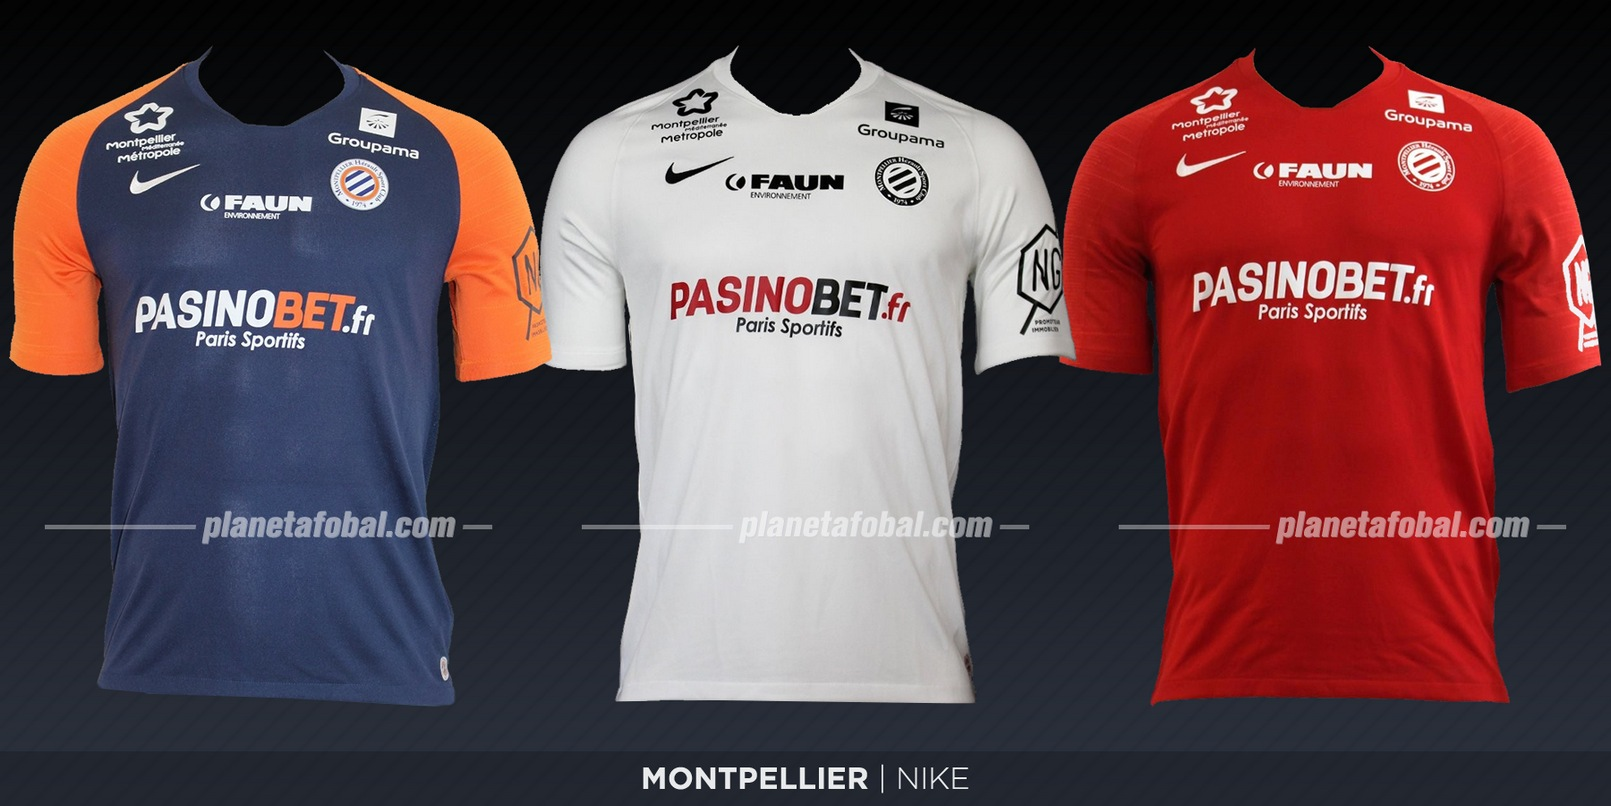 Montpellier (Nike) | Camisetas de la Ligue 1 2019-2020